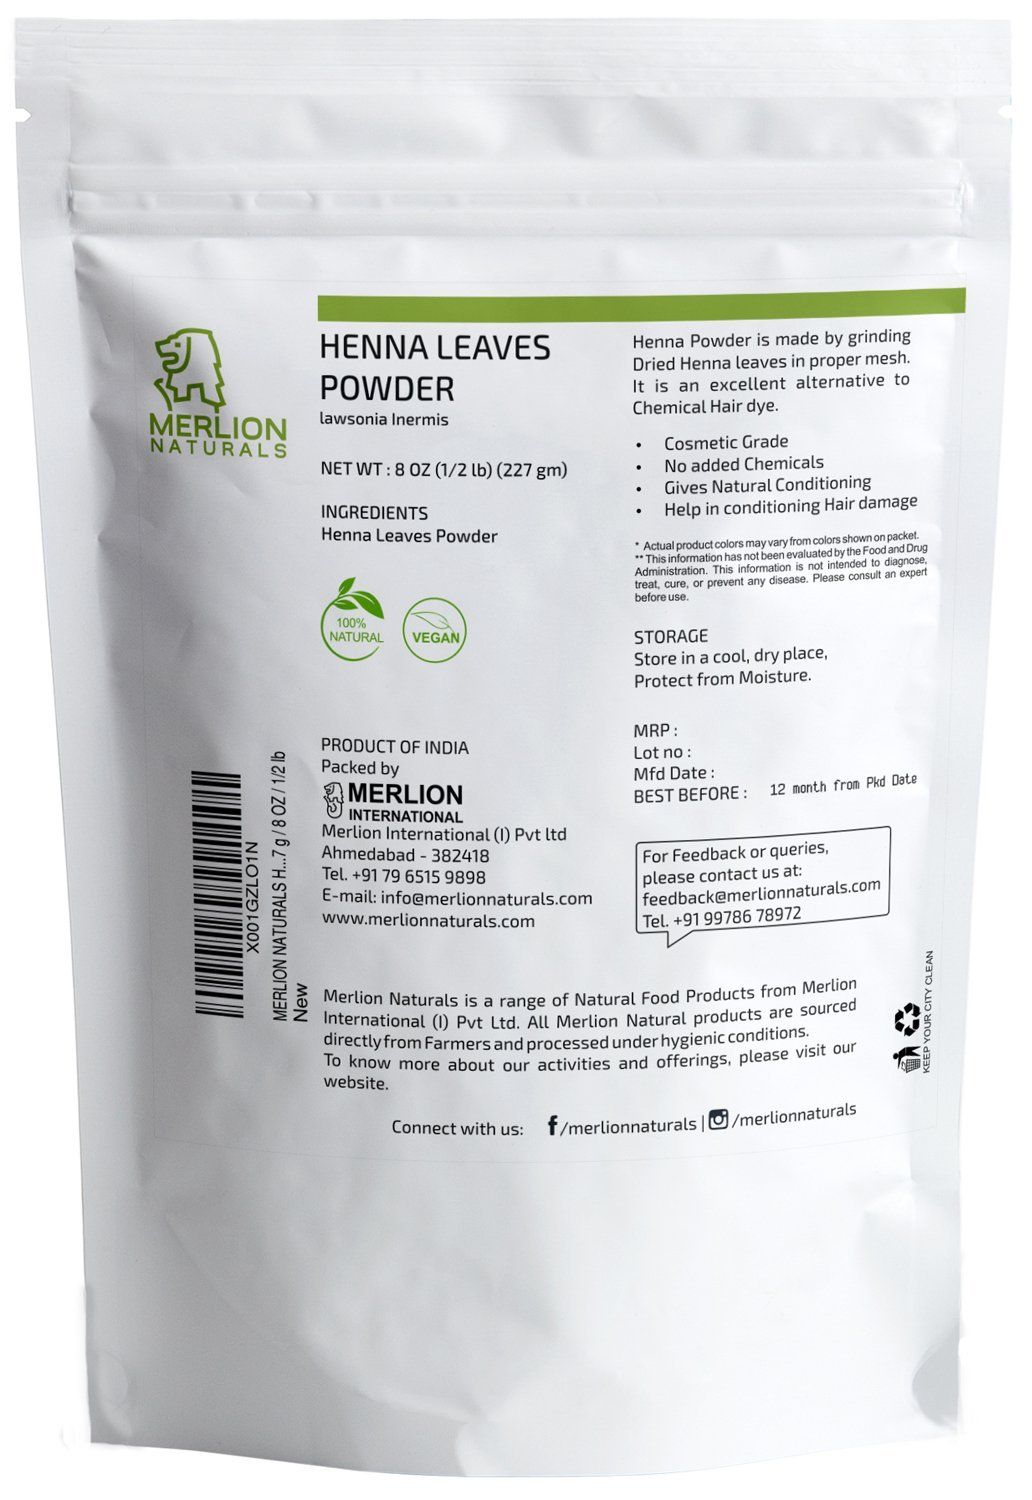 Henna Leaves Powder By Merlion Naturals Lawsonia Inermis 227 G